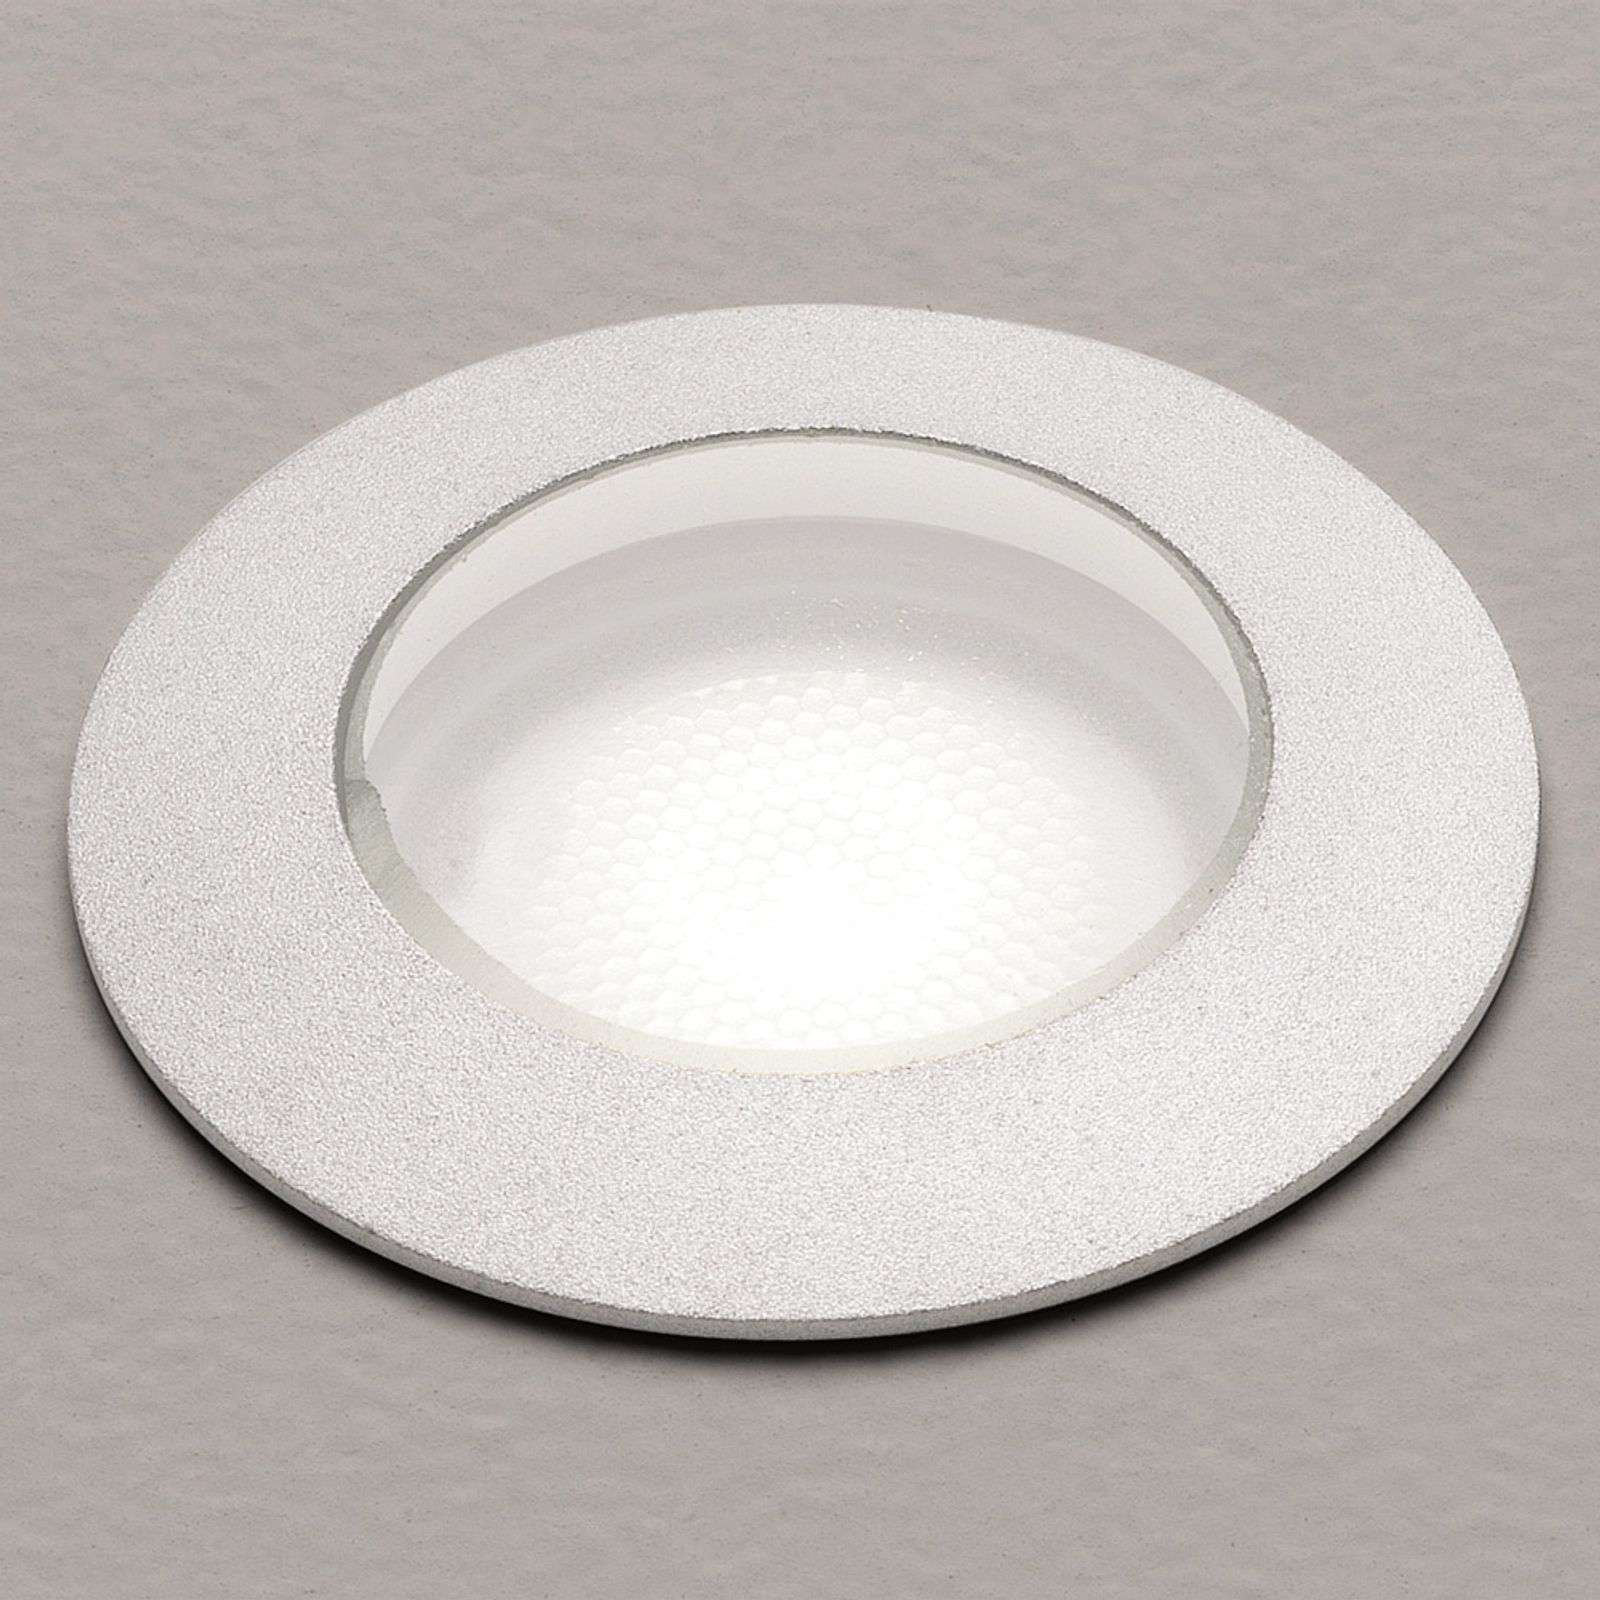 Downlight LED Terra 42 IP67 per bagno